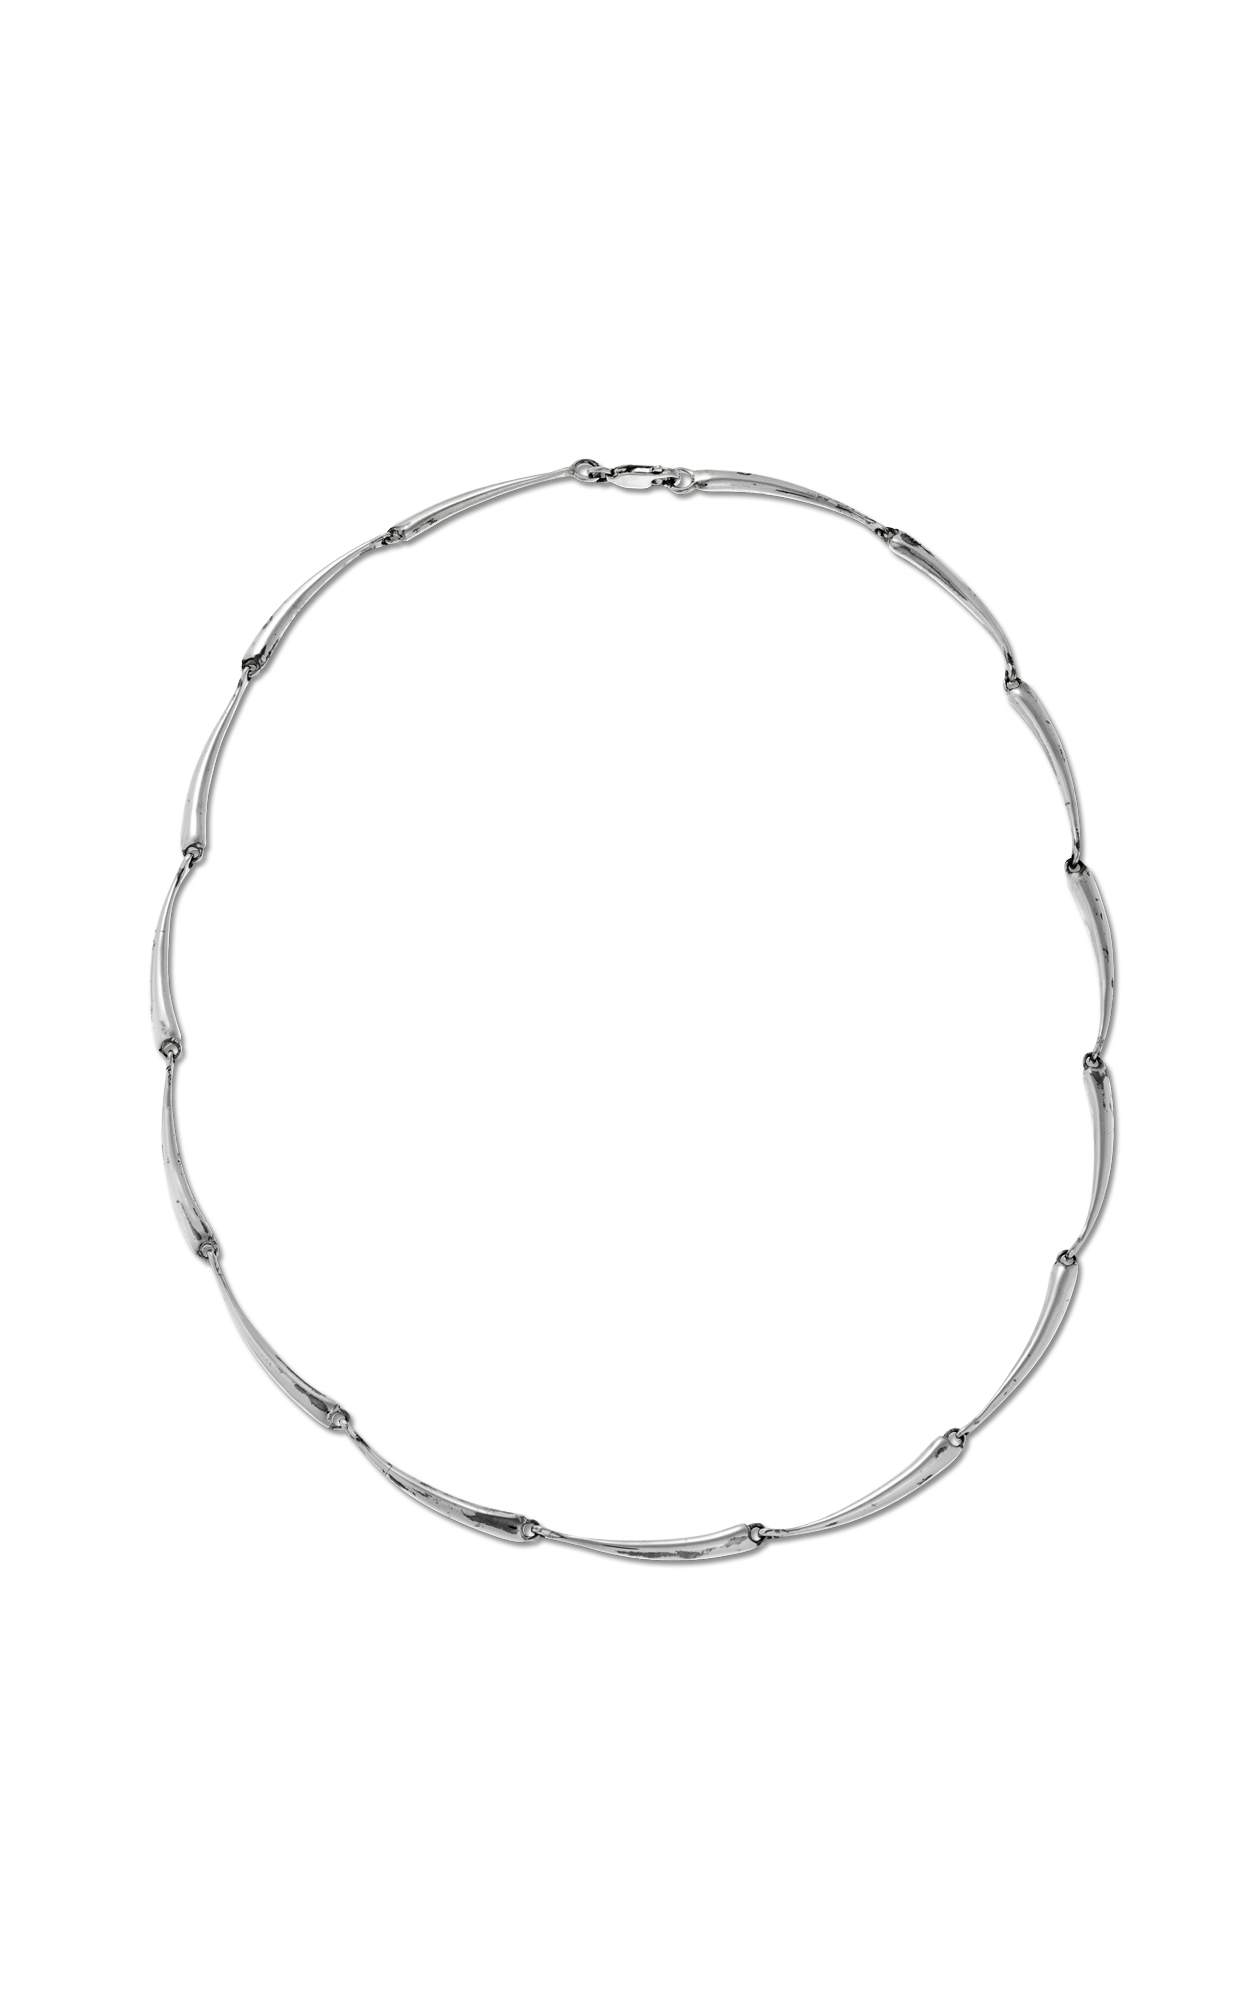 Zina Contemporary Necklace A73-17 product image